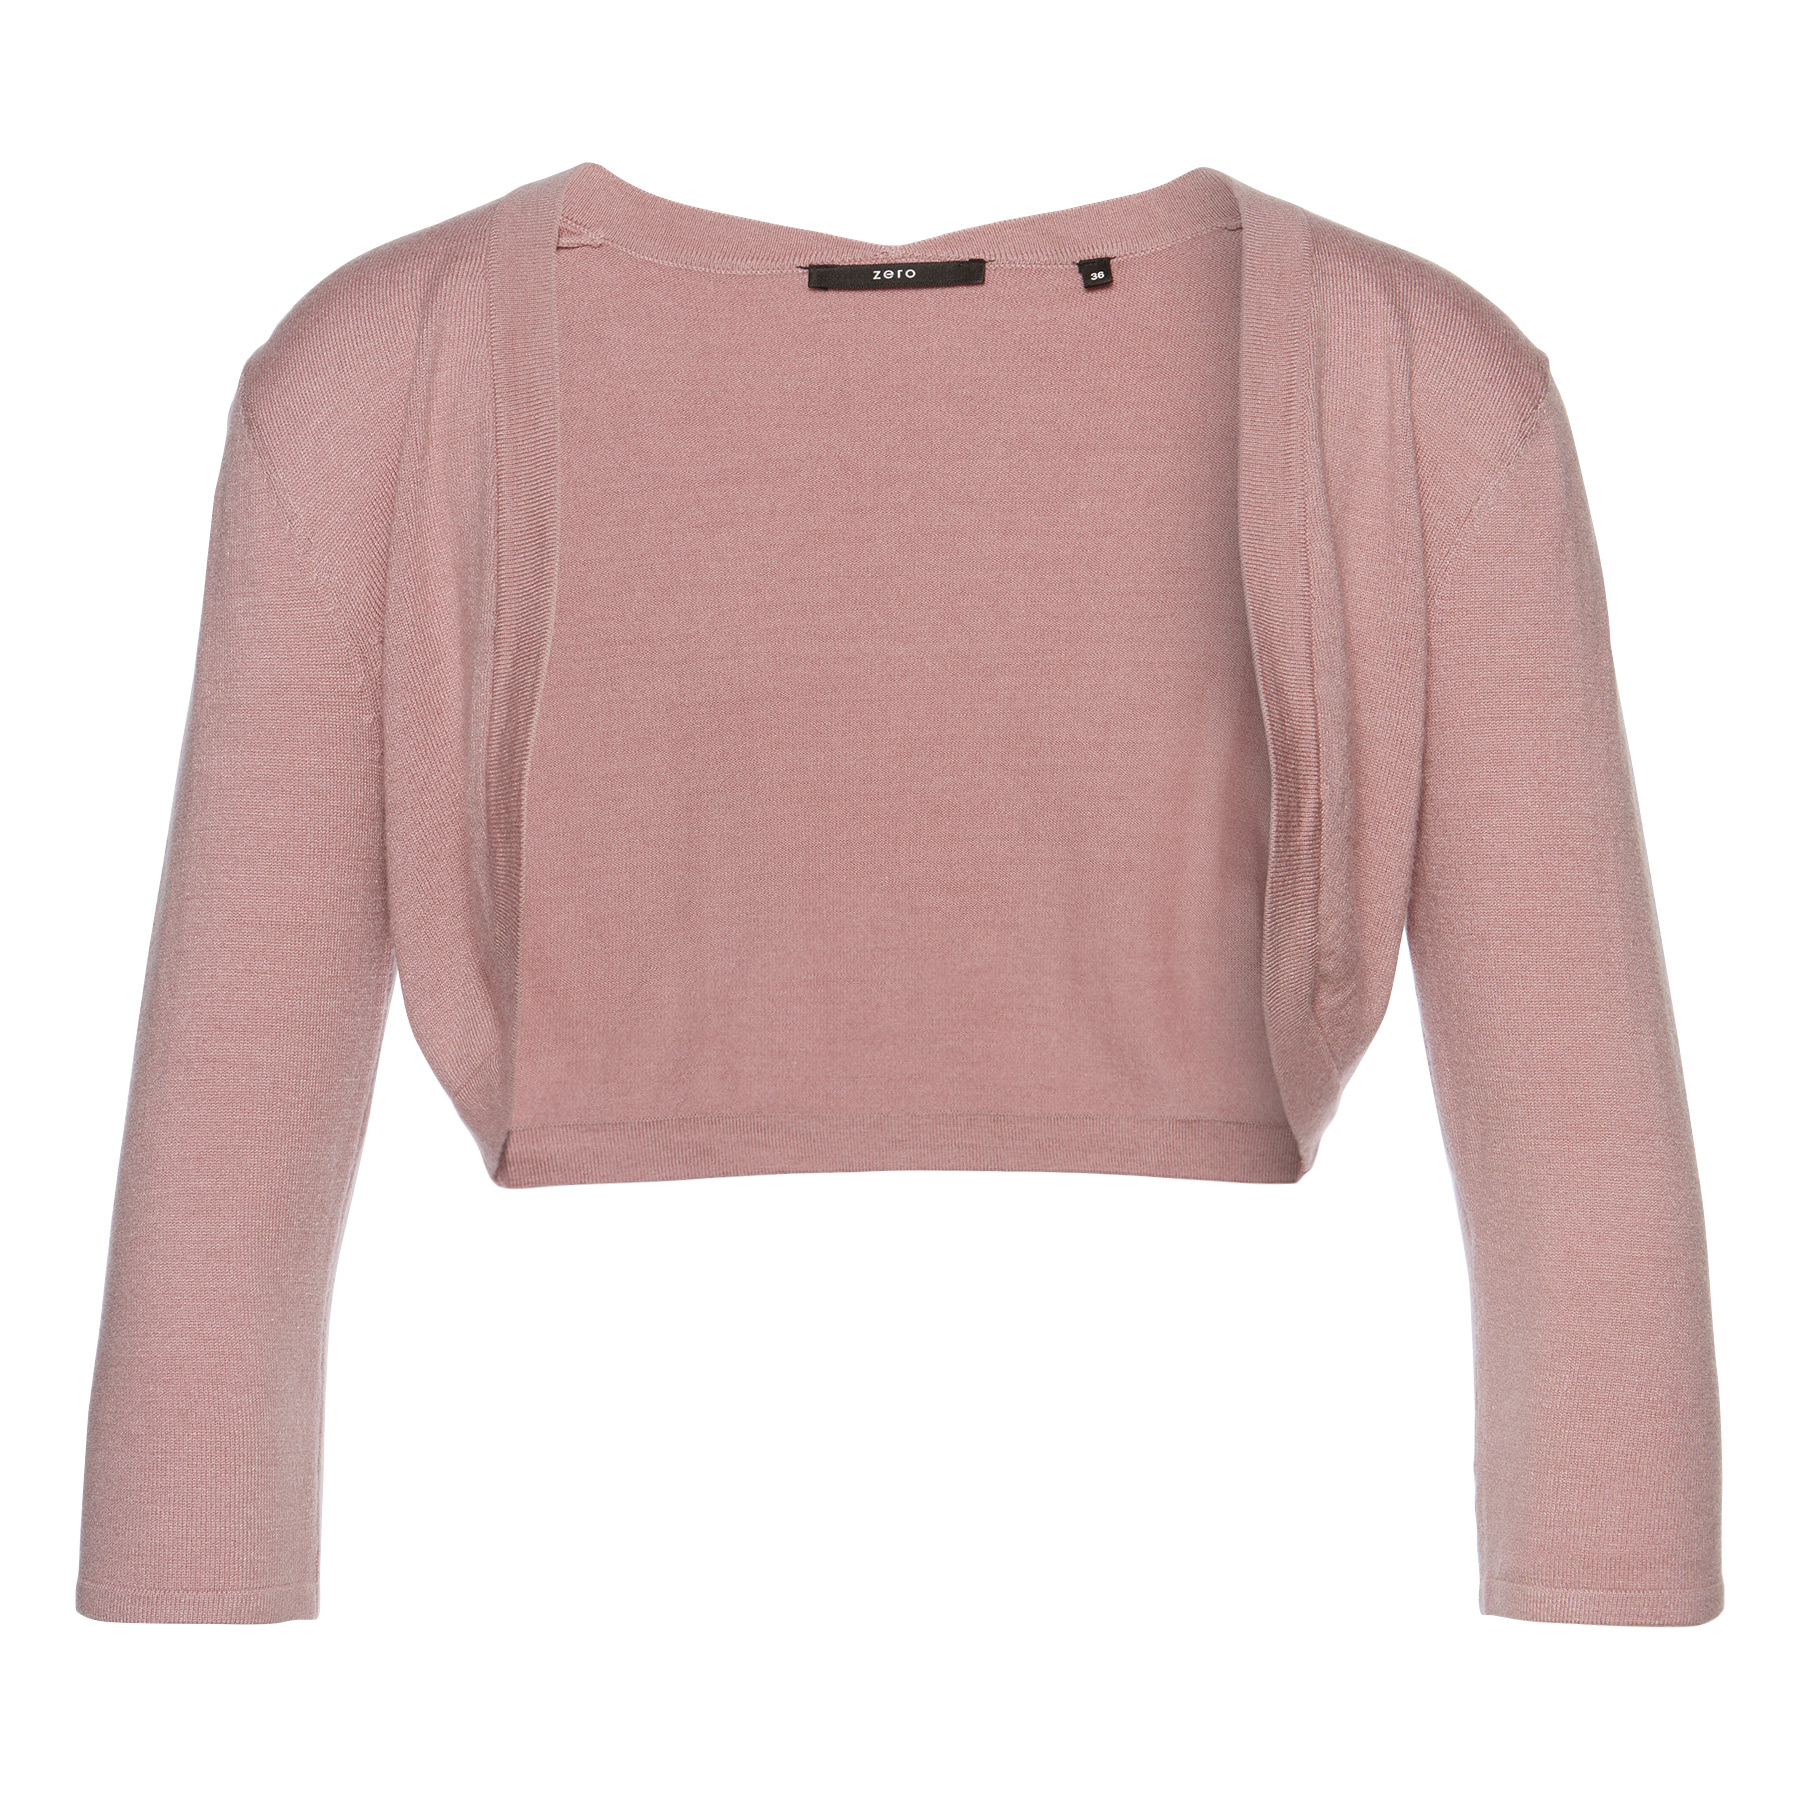 Bolero mit offener Front dusted rose